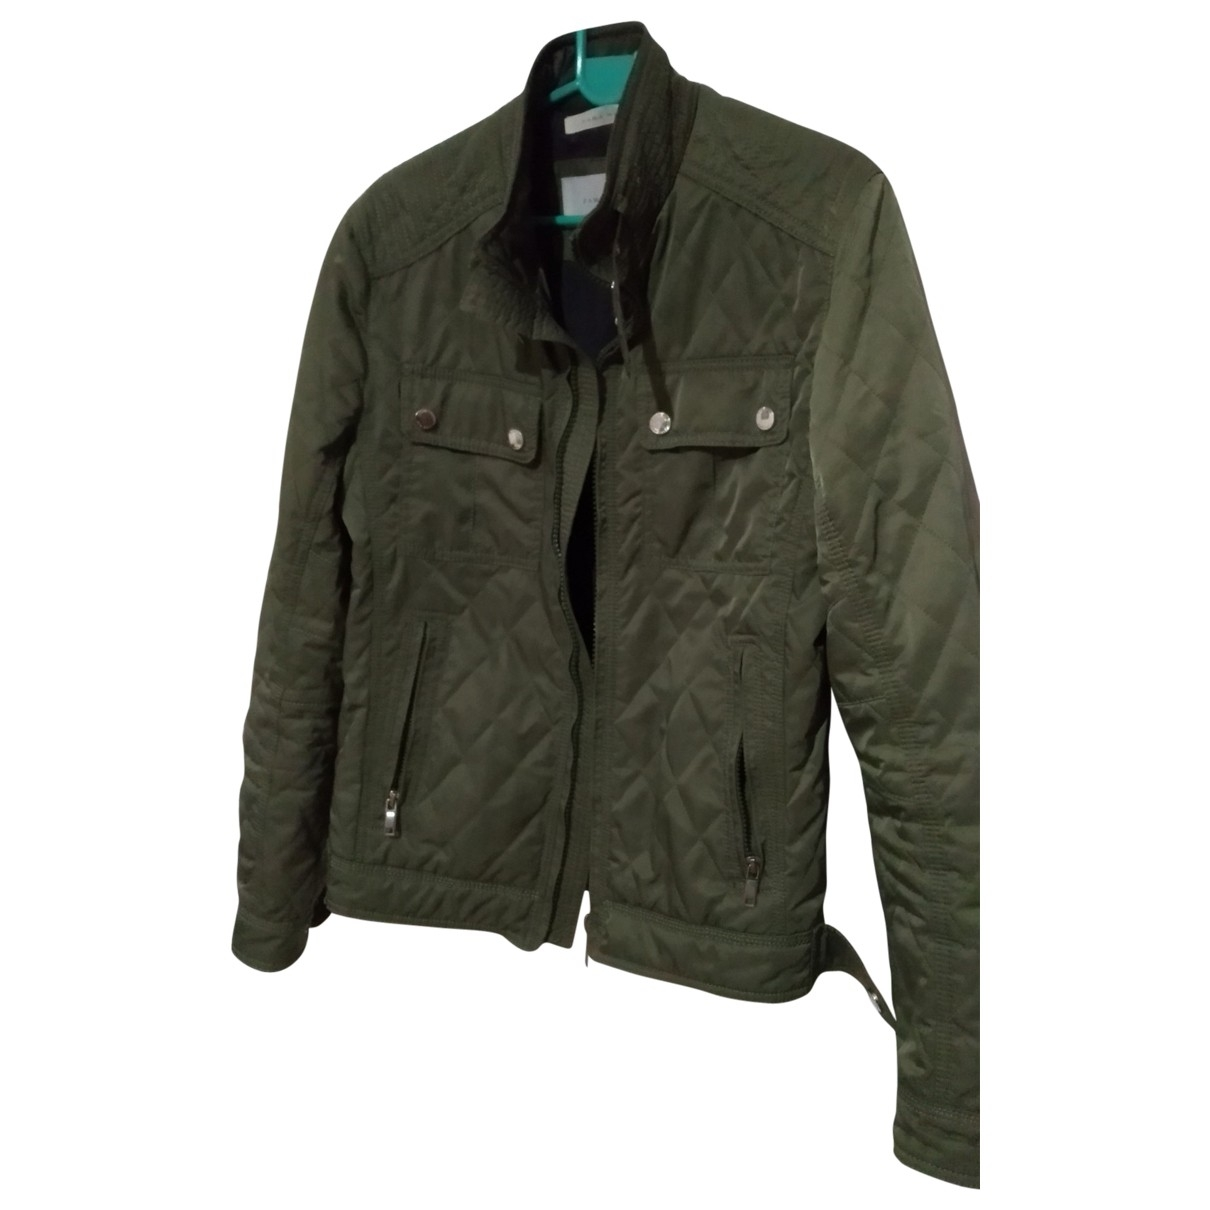 Zara \N Green jacket  for Men M International